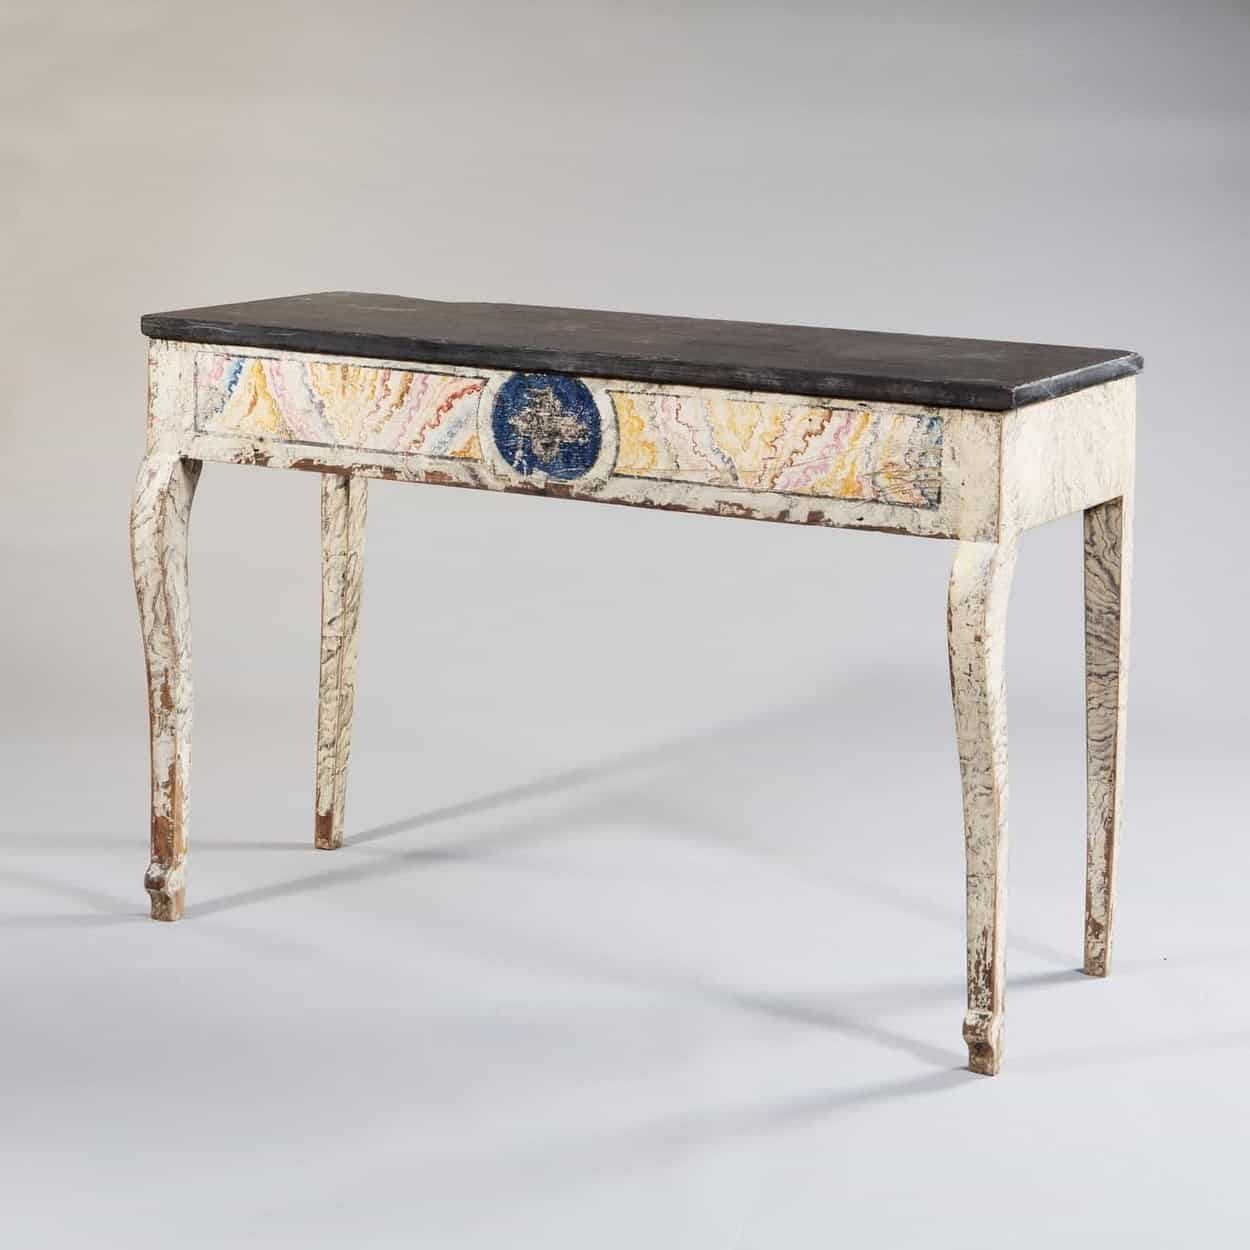 Painted Empire console table